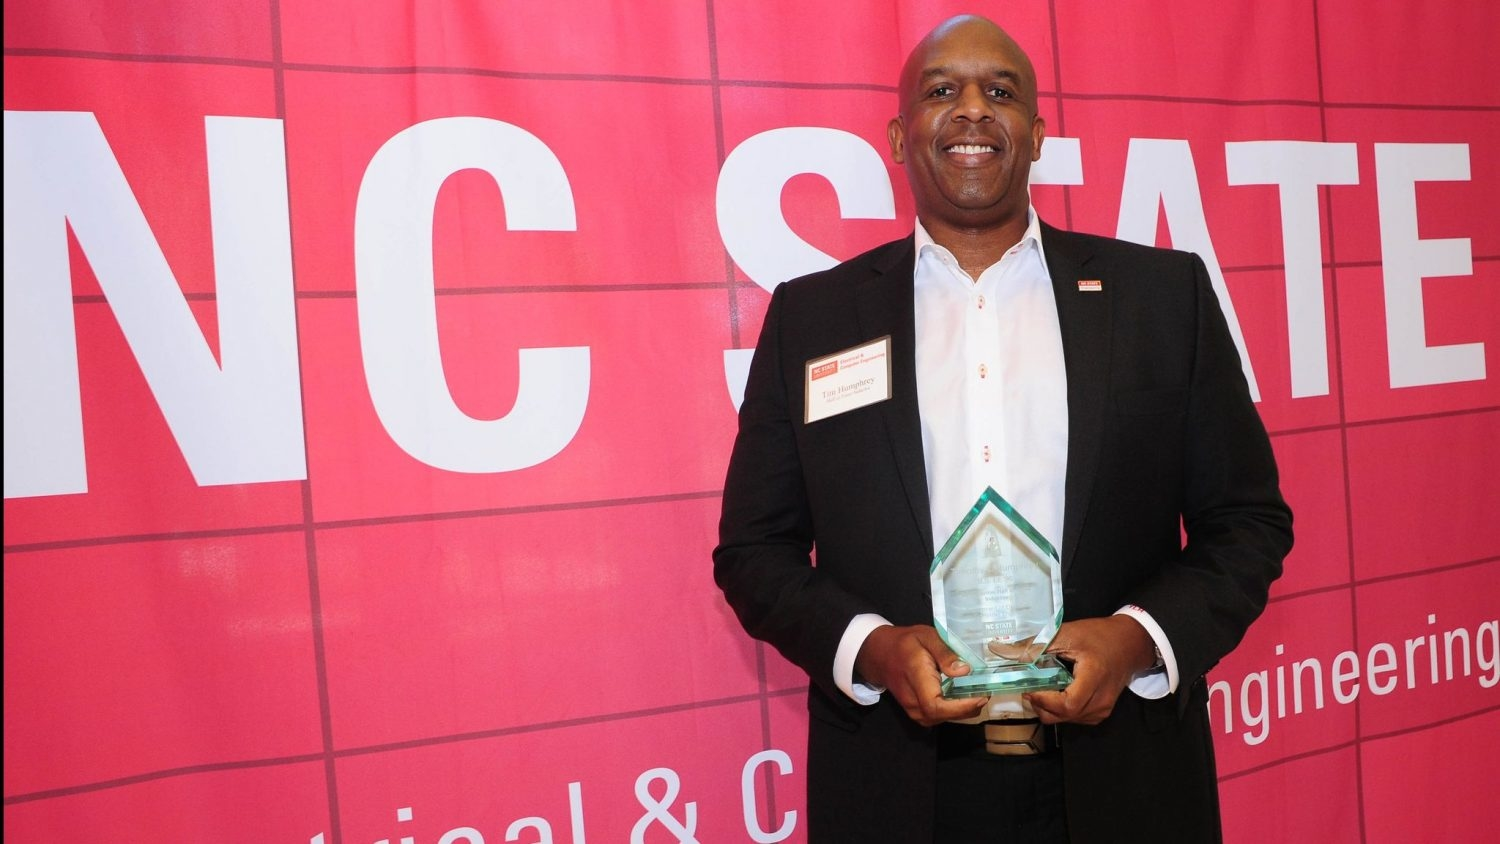 Tim Humphrey holding his Hall of Fame statuette in front of red background